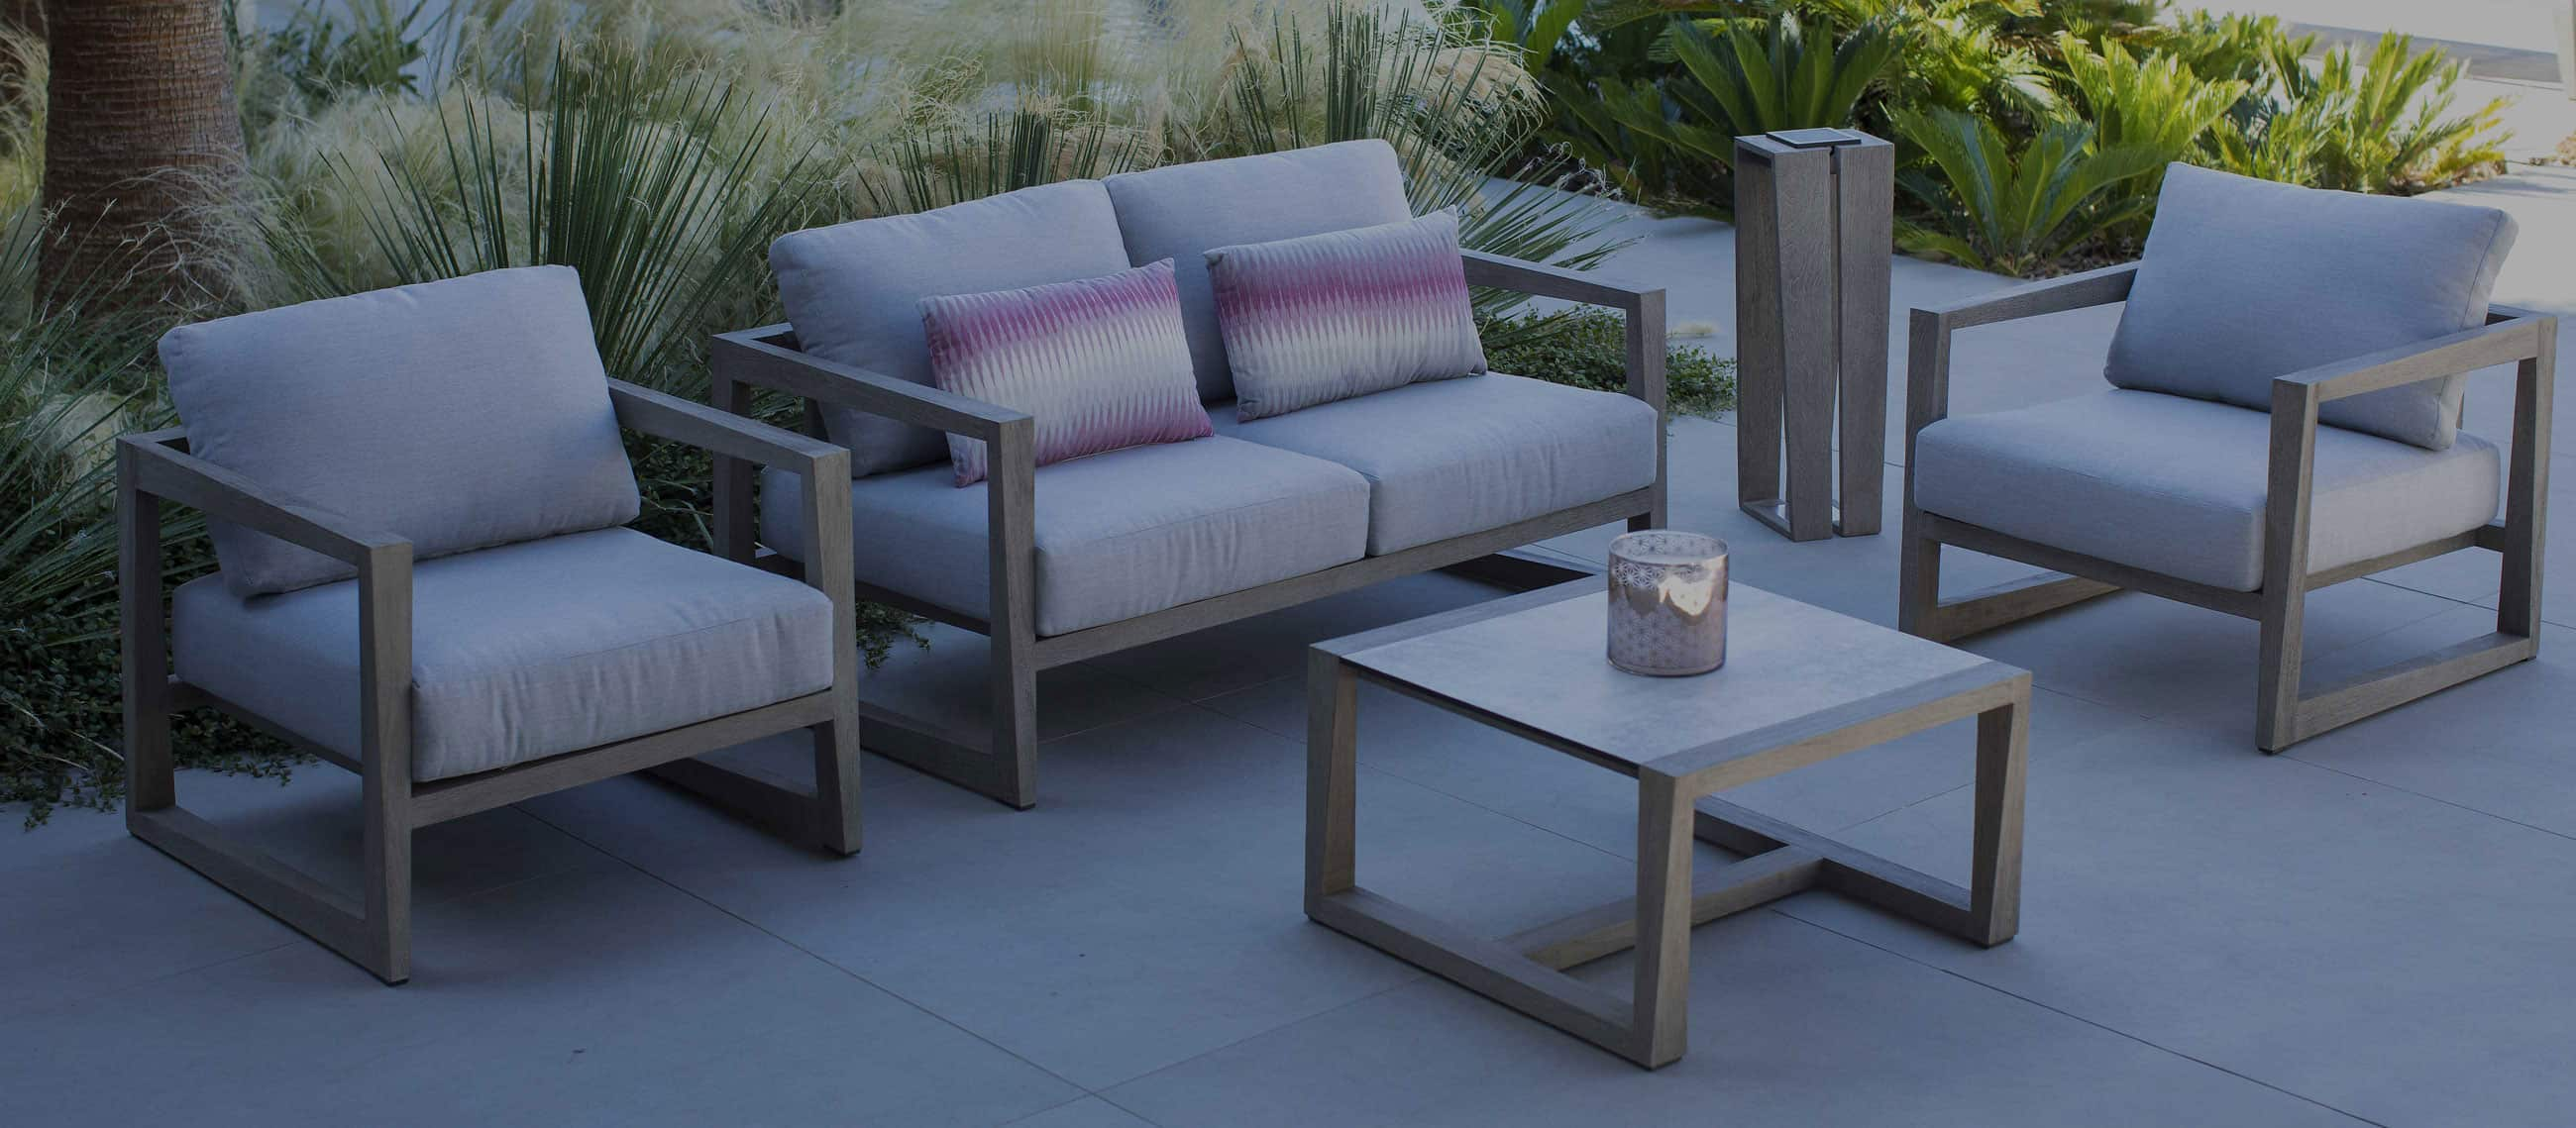 Les Jardings Outdoor Furniture Grey wooden furniture